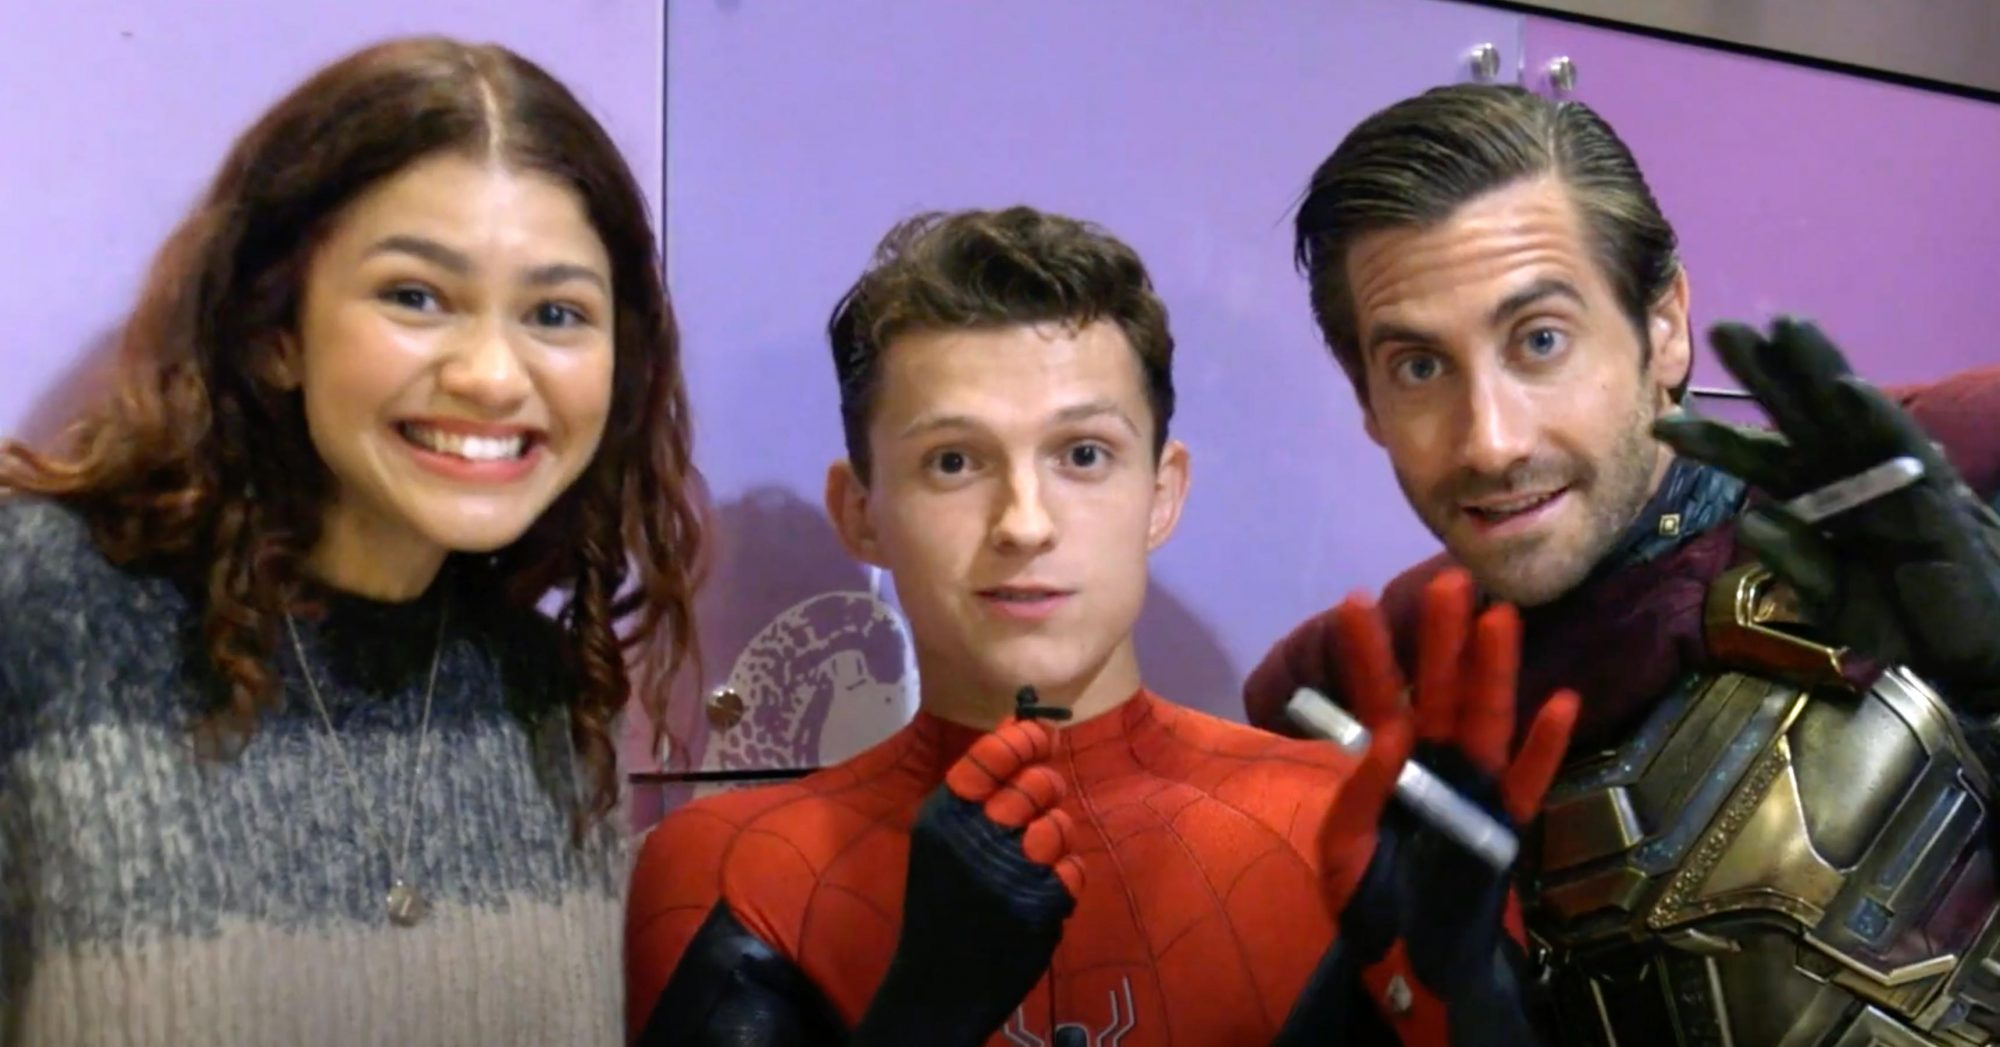 Spider-Man Cast Tom Holland, Zendaya, Jake Gyllenhaal Surprises Kids at Children's Hospital LA (screen grab)